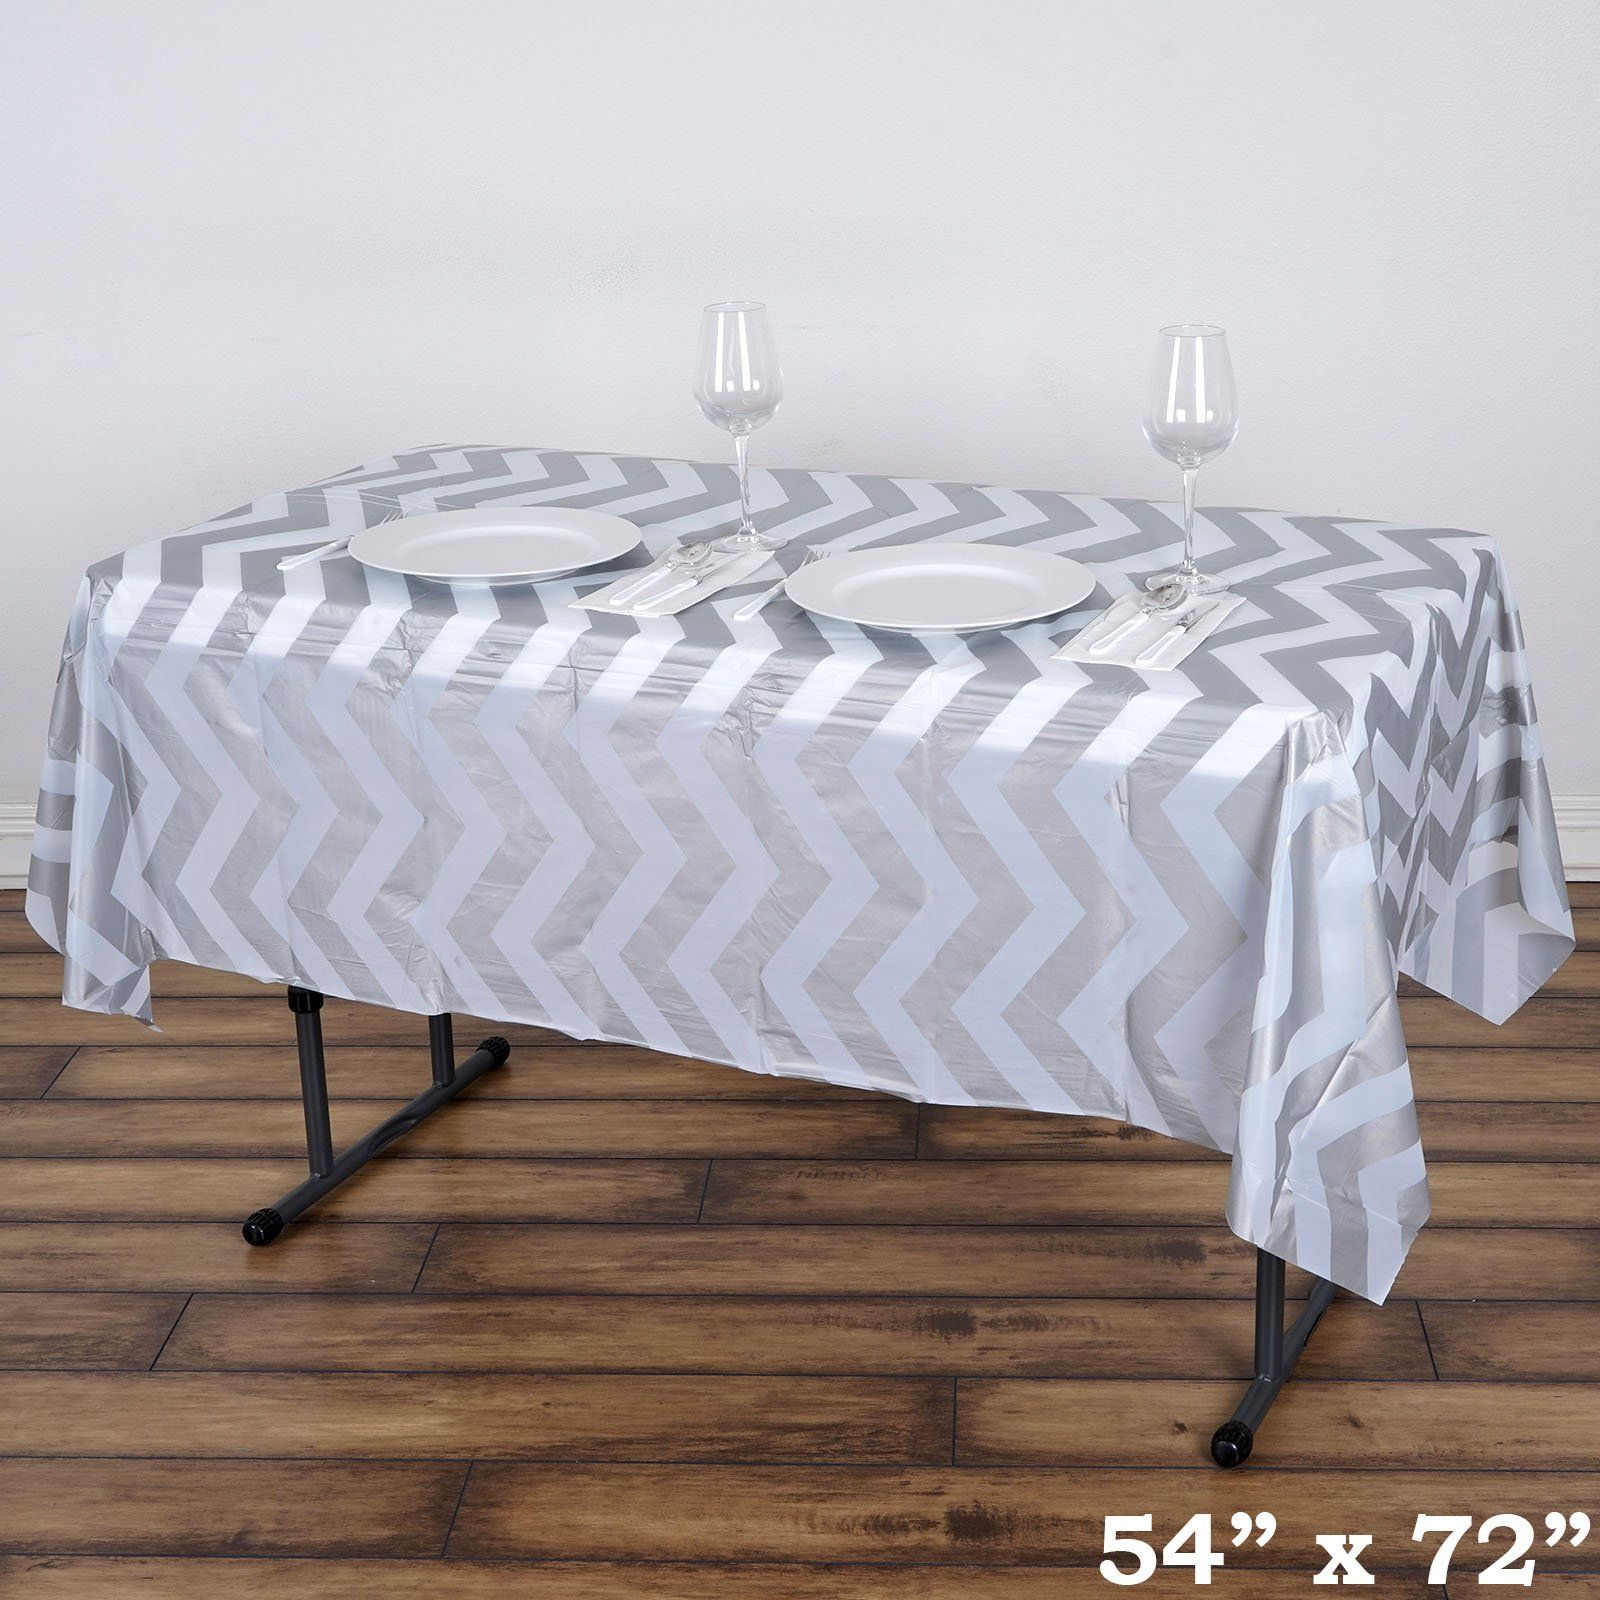 54 X 72 Silver 10 Mil Thick Chevron Waterproof Tablecloth Pvc Rectangle Disposable Tablecloth Plastic Table Covers Waterproof Tablecloth Plastic Tables